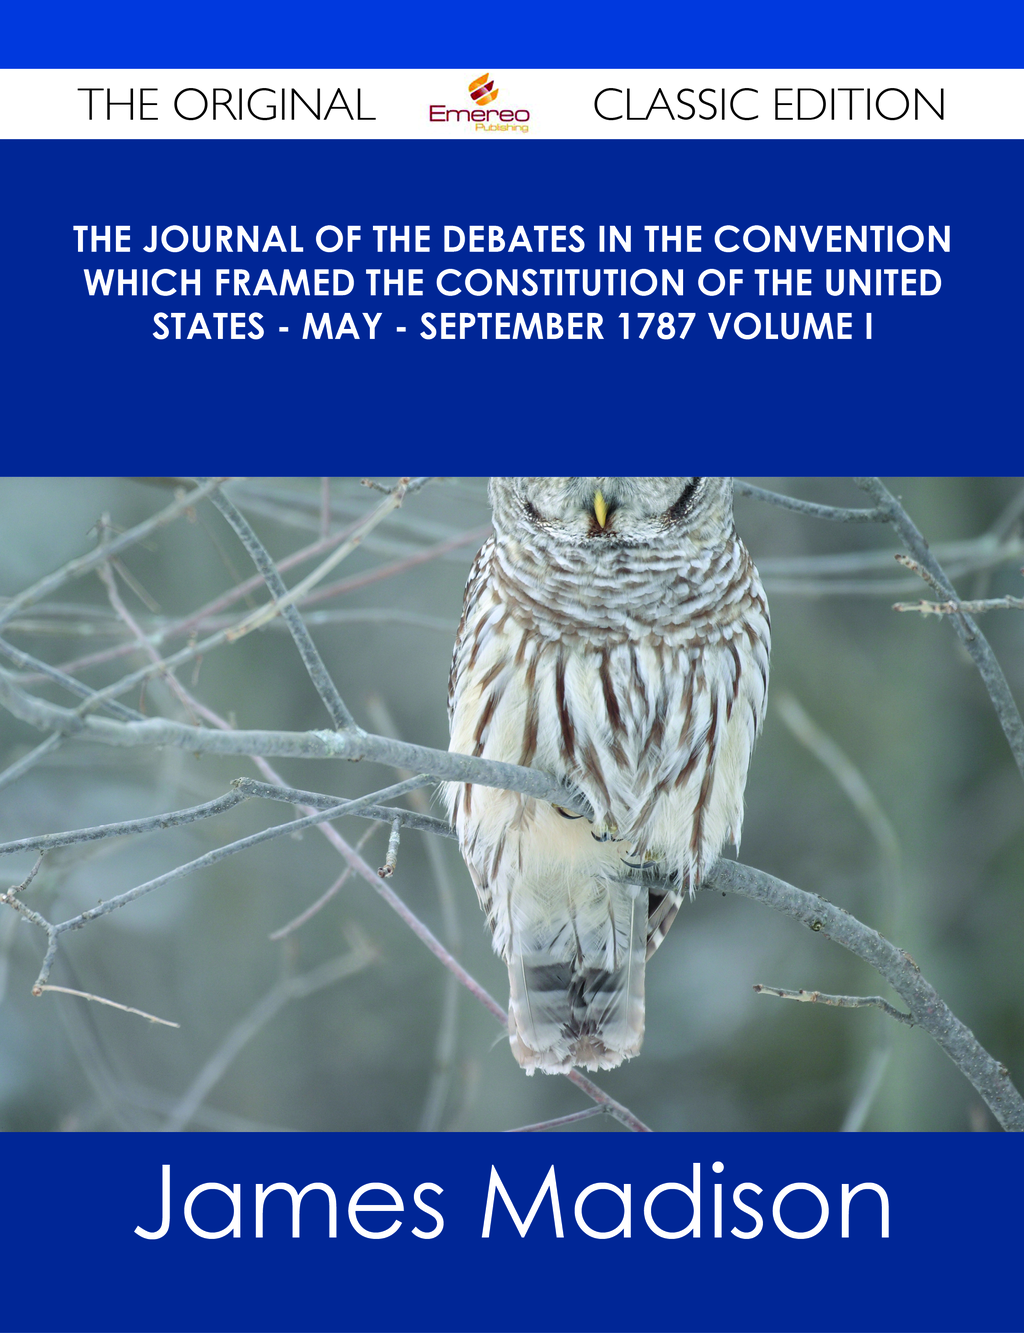 The Journal of the Debates in the Convention which Framed the Constitution of the United States - May - September 1787 Volume I - The Original Classic Edition